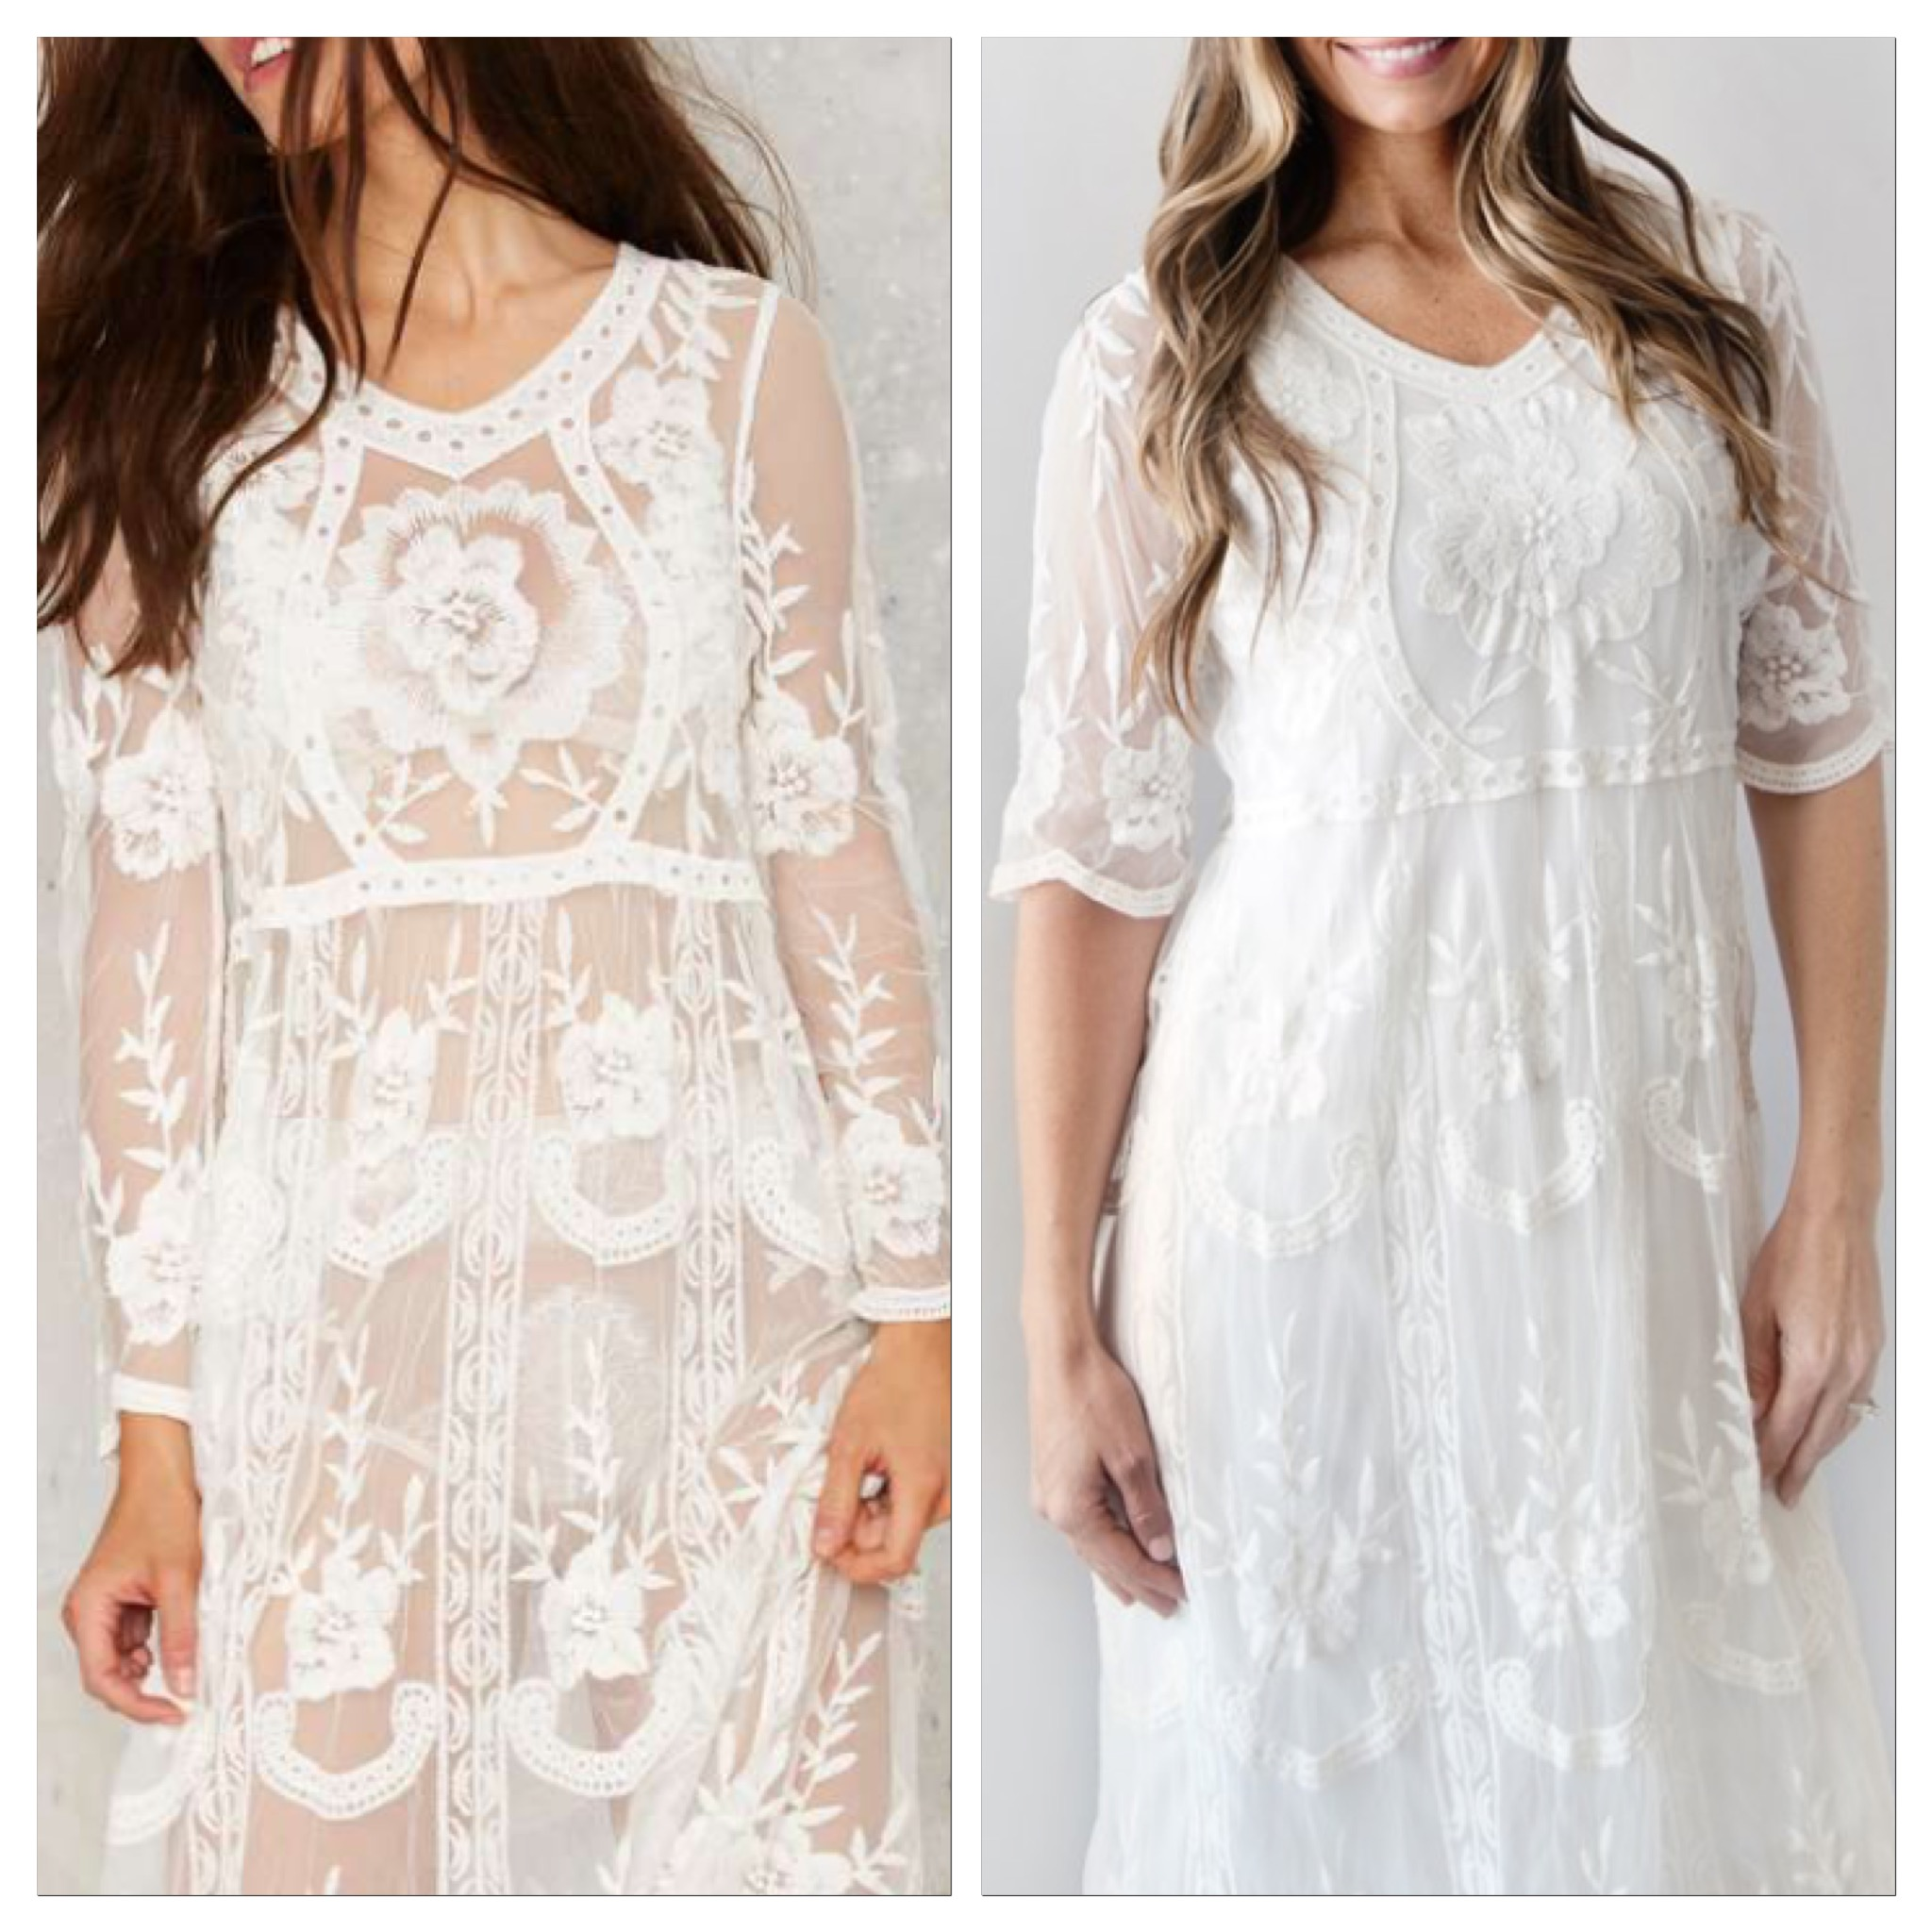 One dress is $88 and unlined, the other is $34.99 and lined. Almost identical!